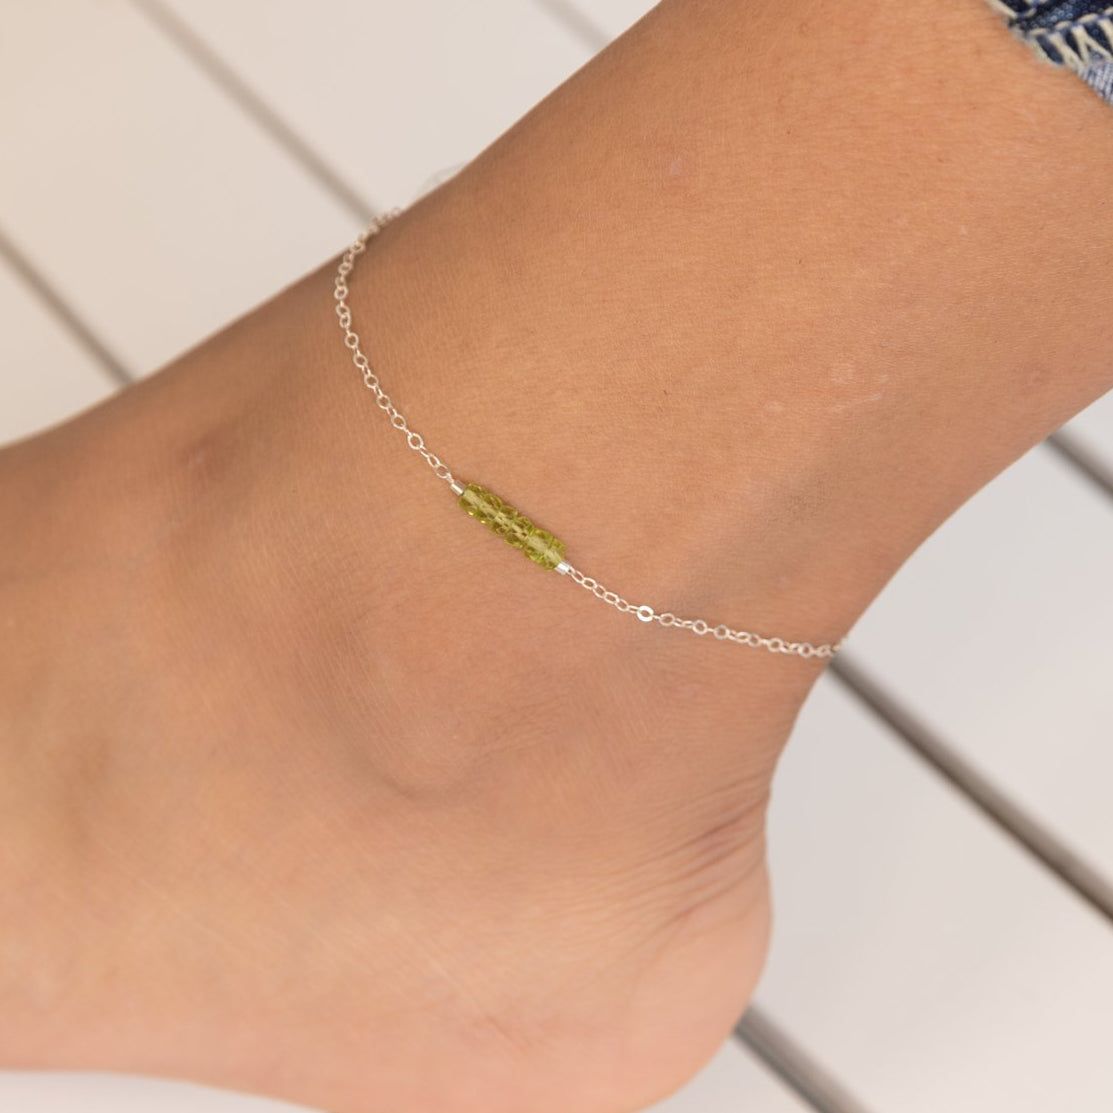 Peridot, Peridot Anklet, Peridot Ankle Bracelet, August Birthstone Jewelry, Healing Crystal Jewelry, August Birthday Gift, Green Crystal, Peridot Gemstone, Dainty Anklet, Delicate Gold Anklet